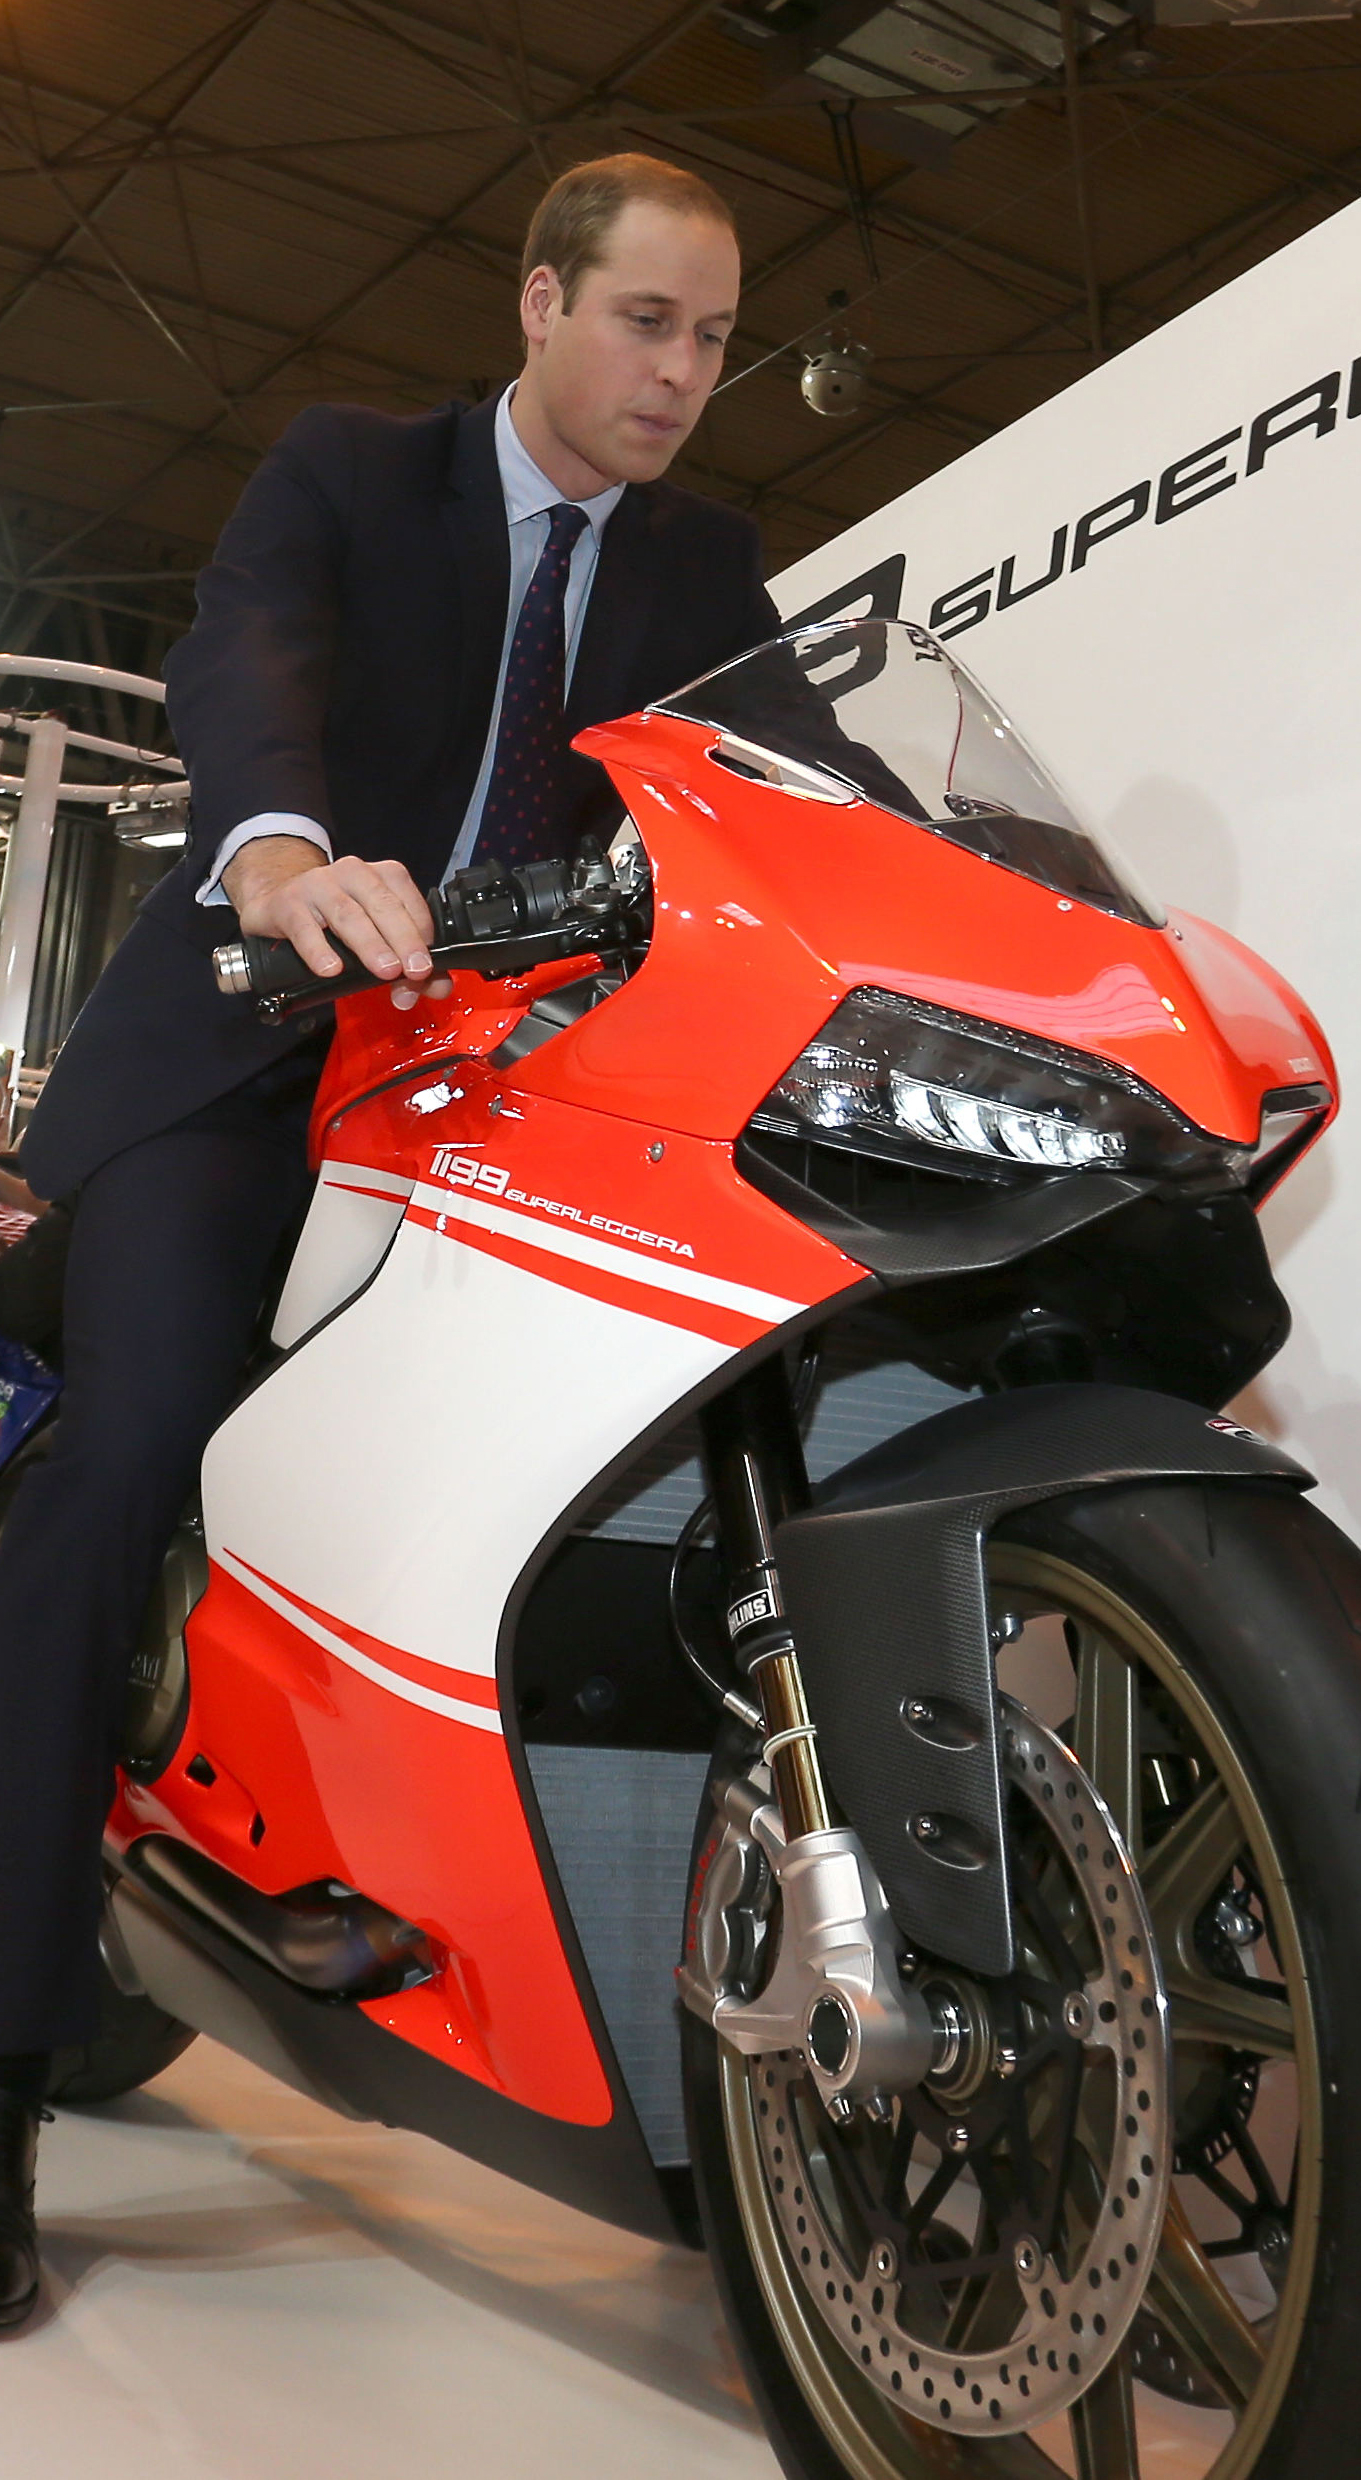 Prince William visits Motorcycle Live